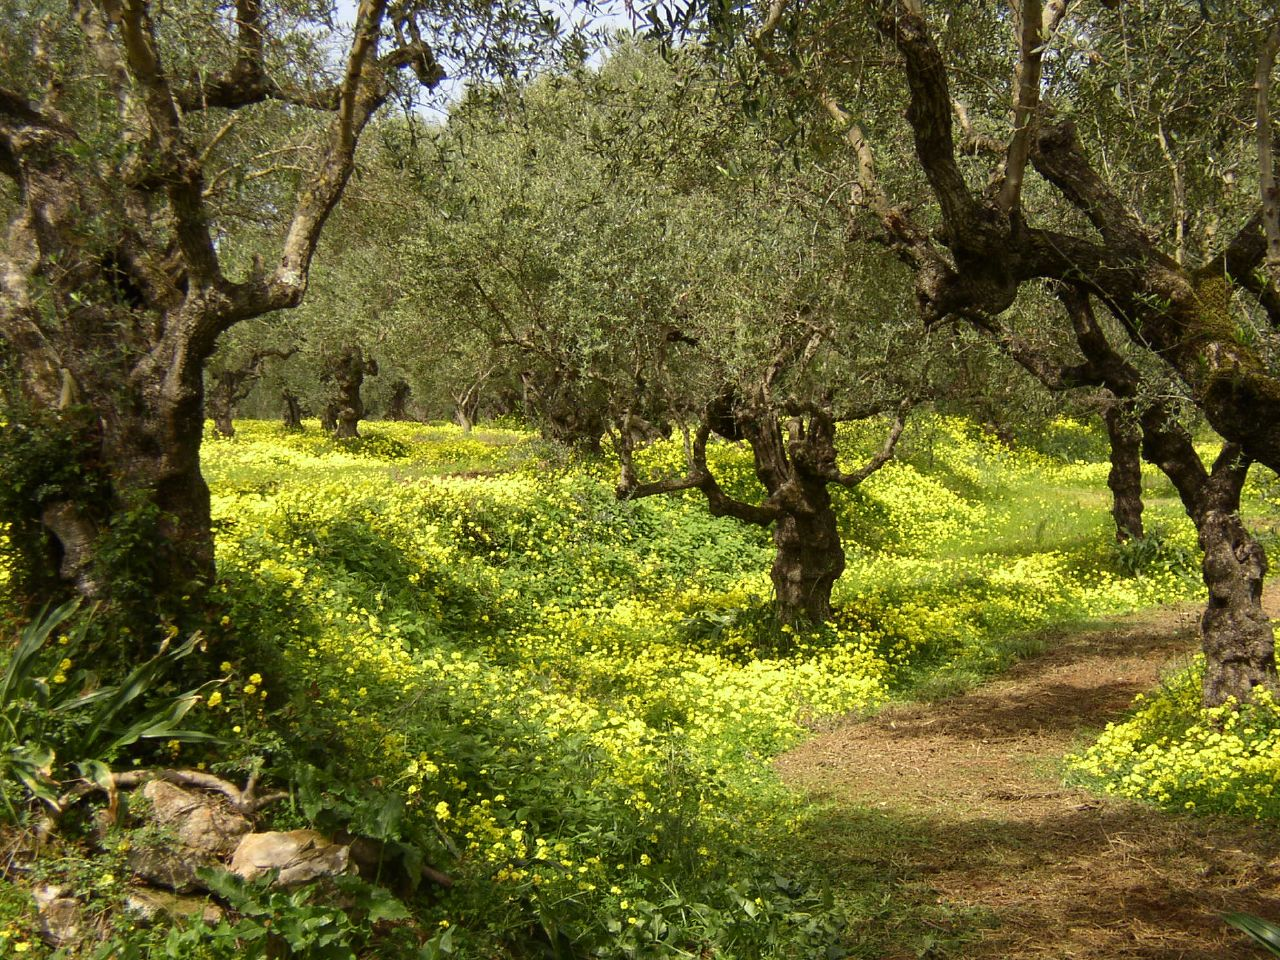 Spring Olive Grove Zakynthos Greece Flickr Photo Sharing